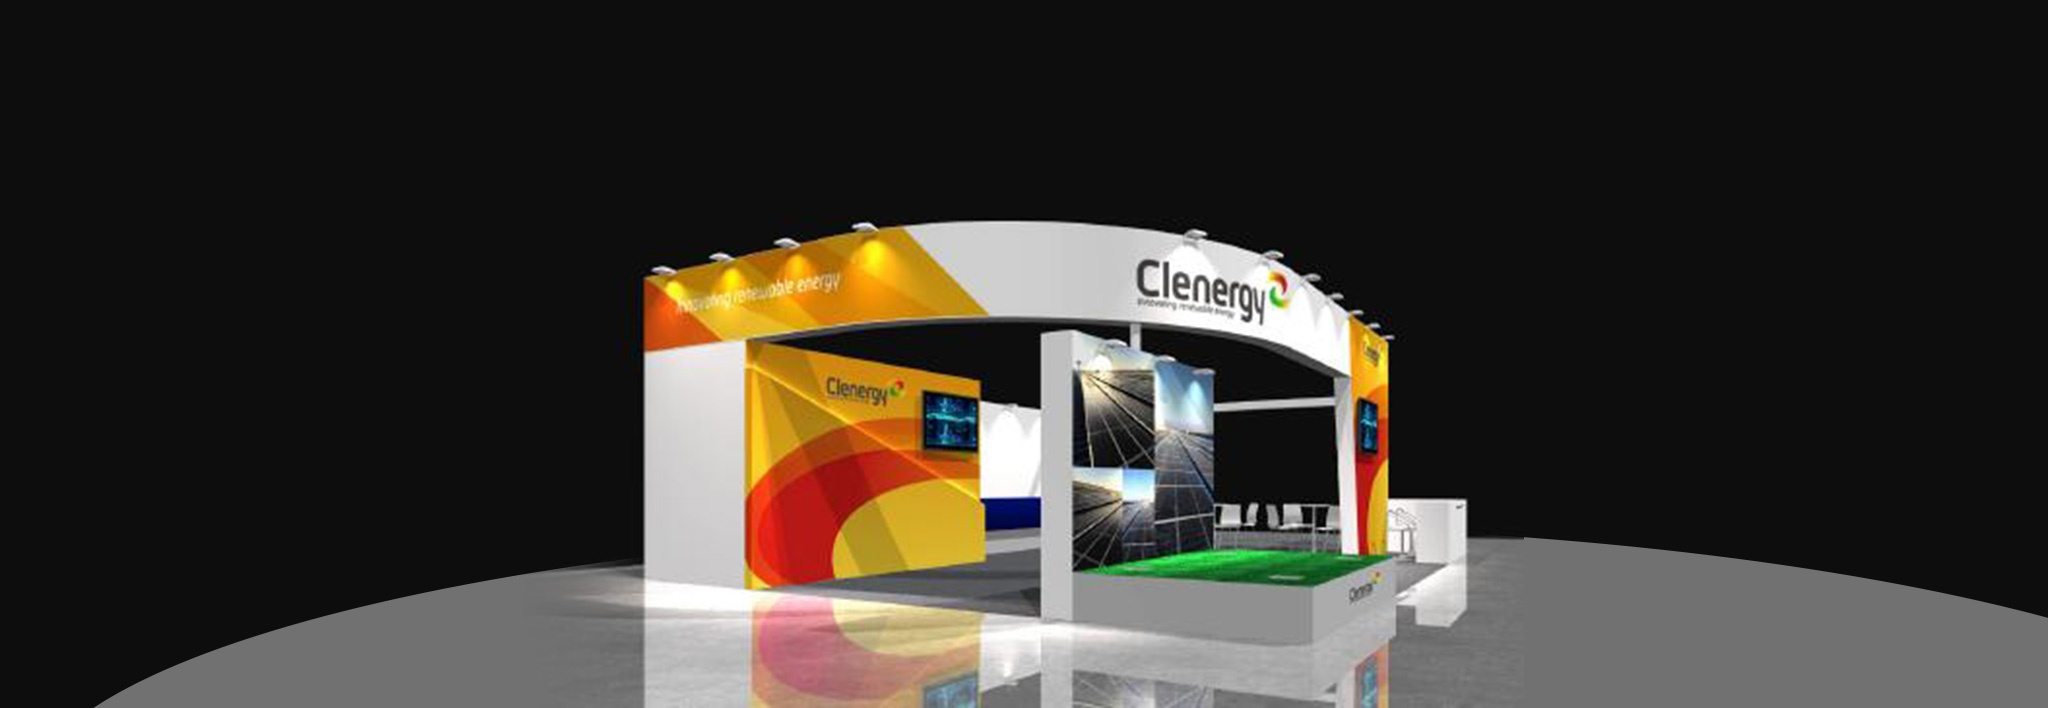 Clenergy at Japan PV EXPO 2018 Invitation Letter